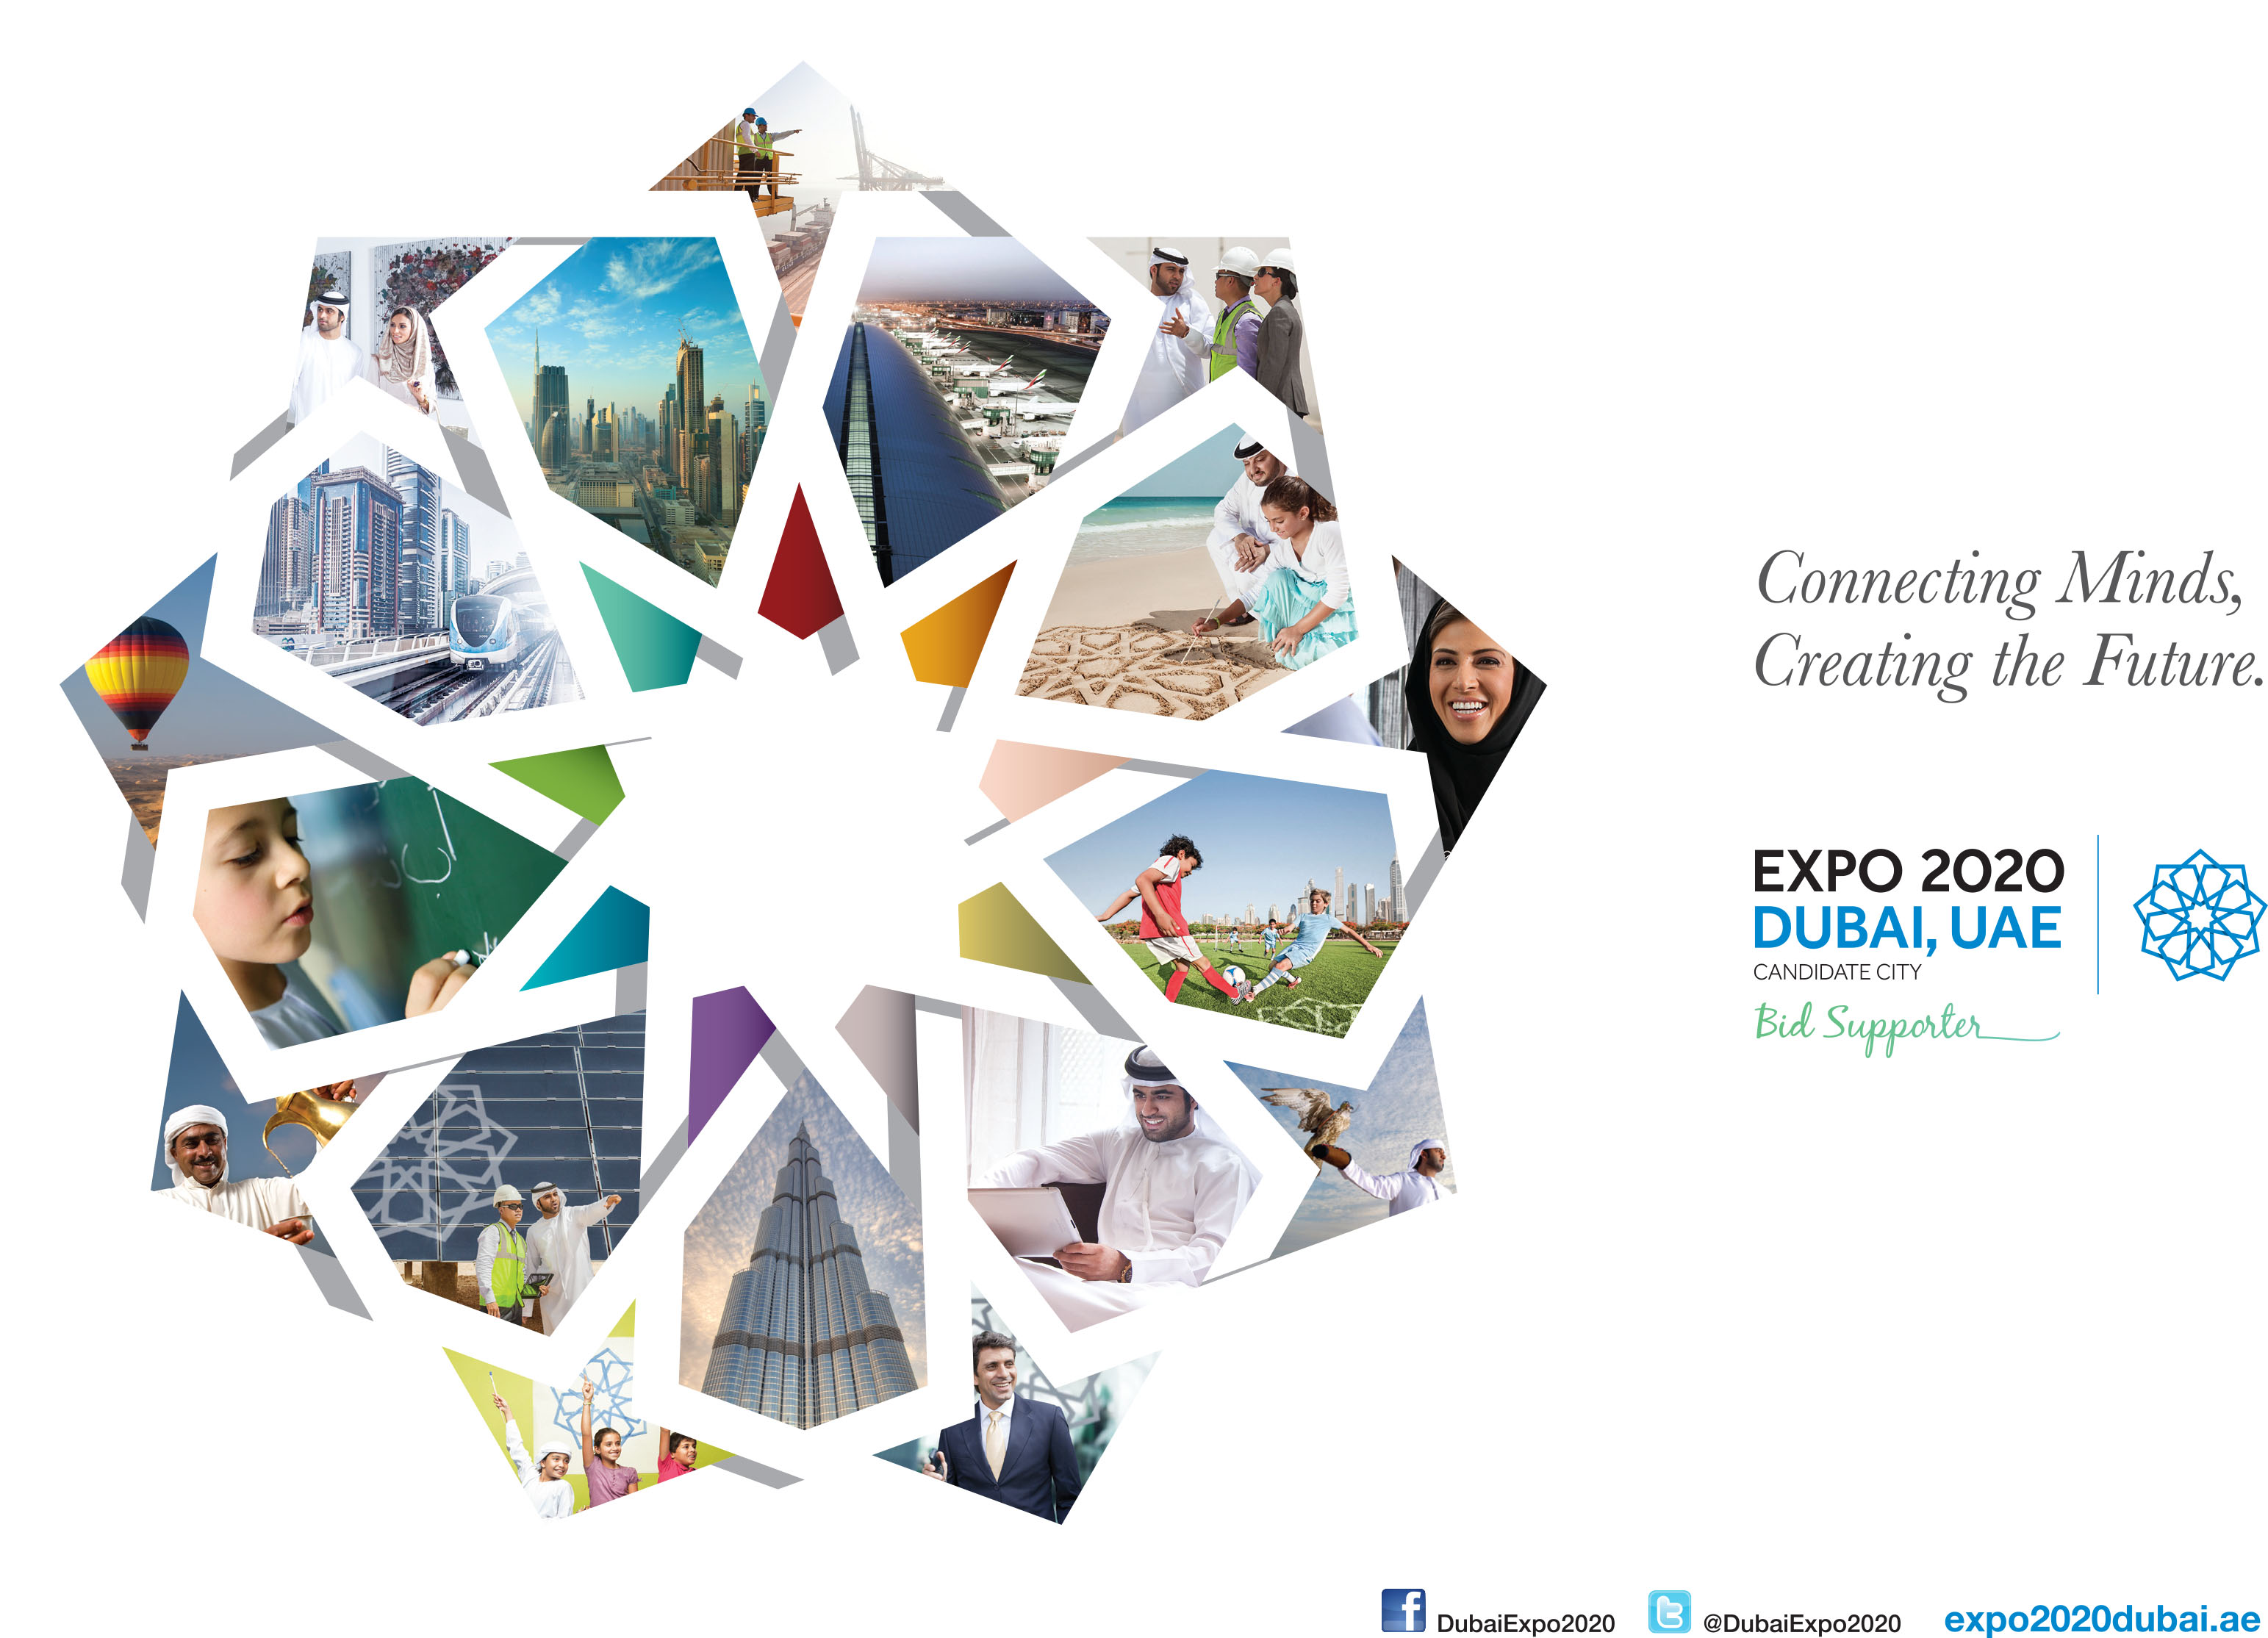 Expo 2020 will be held in Dubai